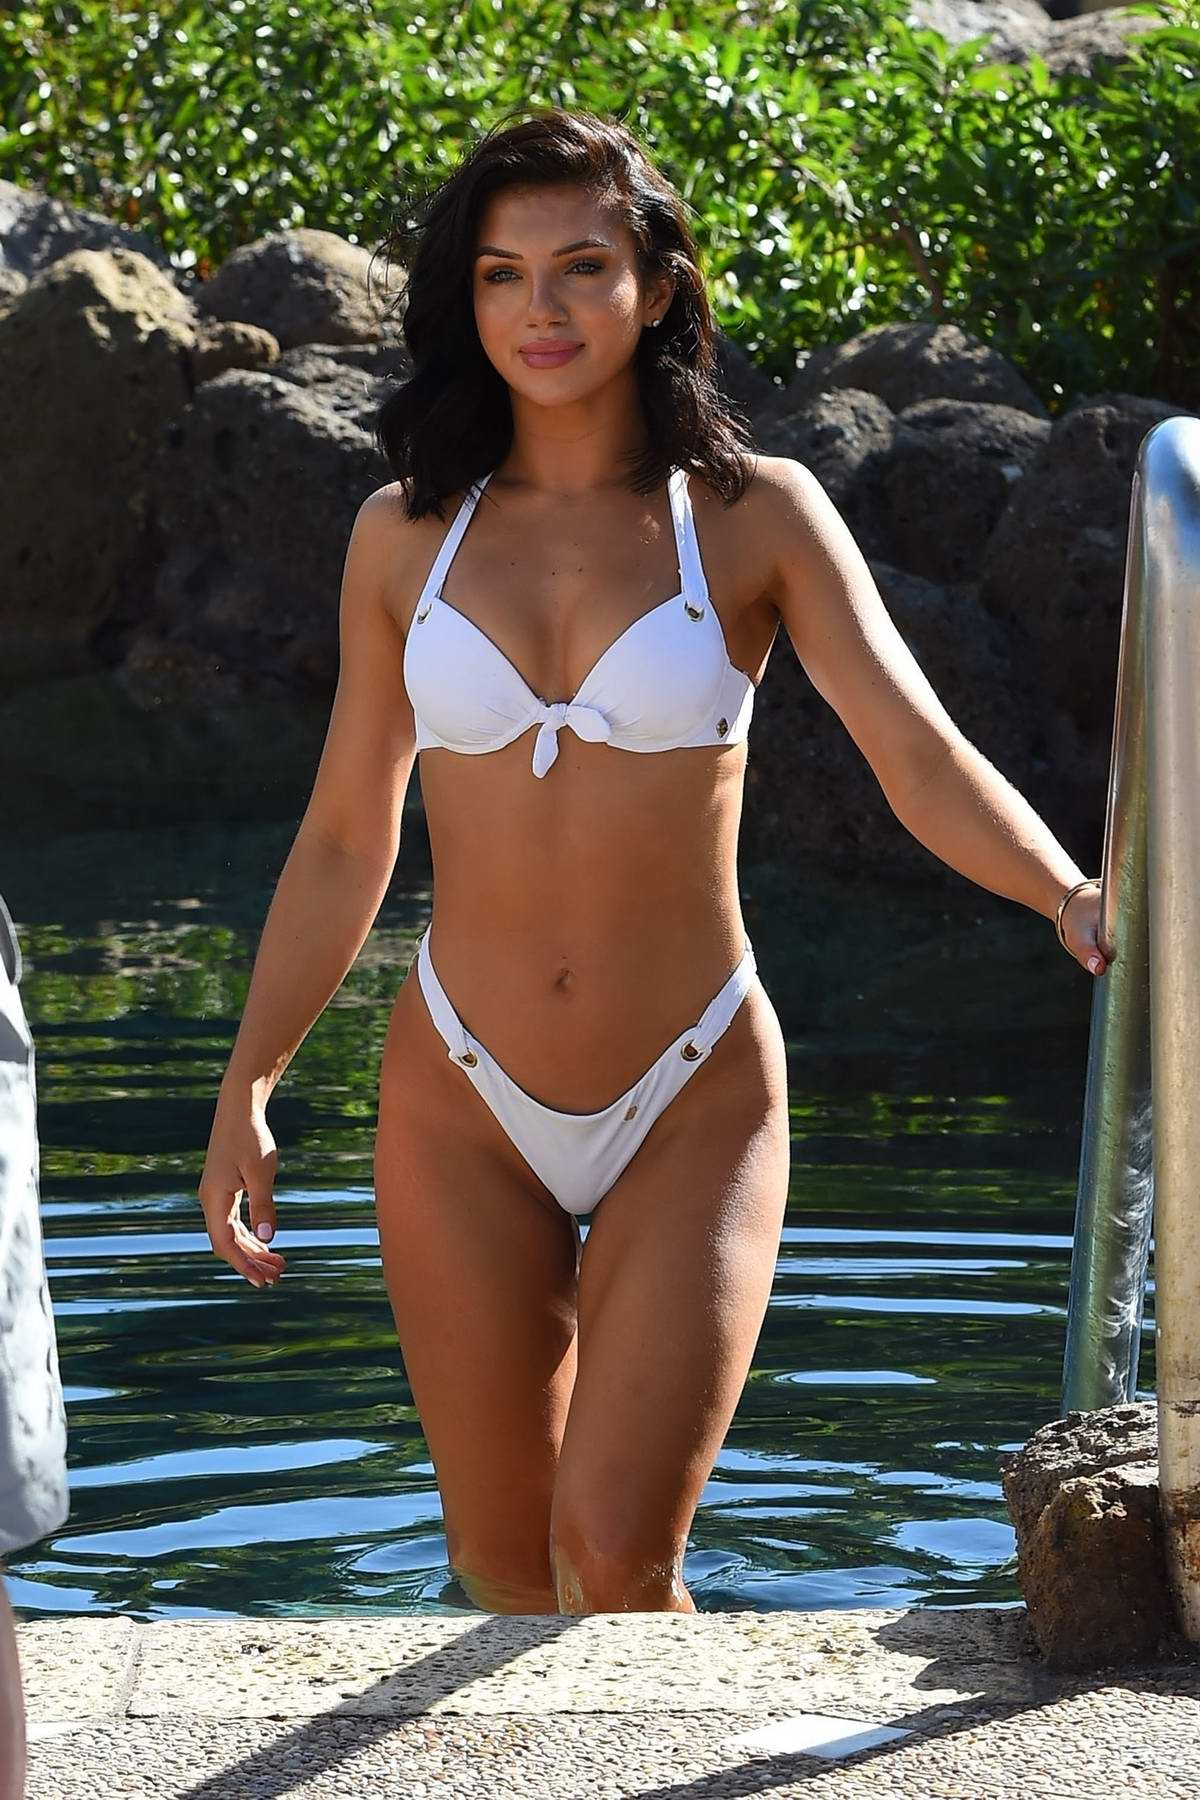 Alexandra Cane looks amazing in a white bikini while filming by the pool in Cuba